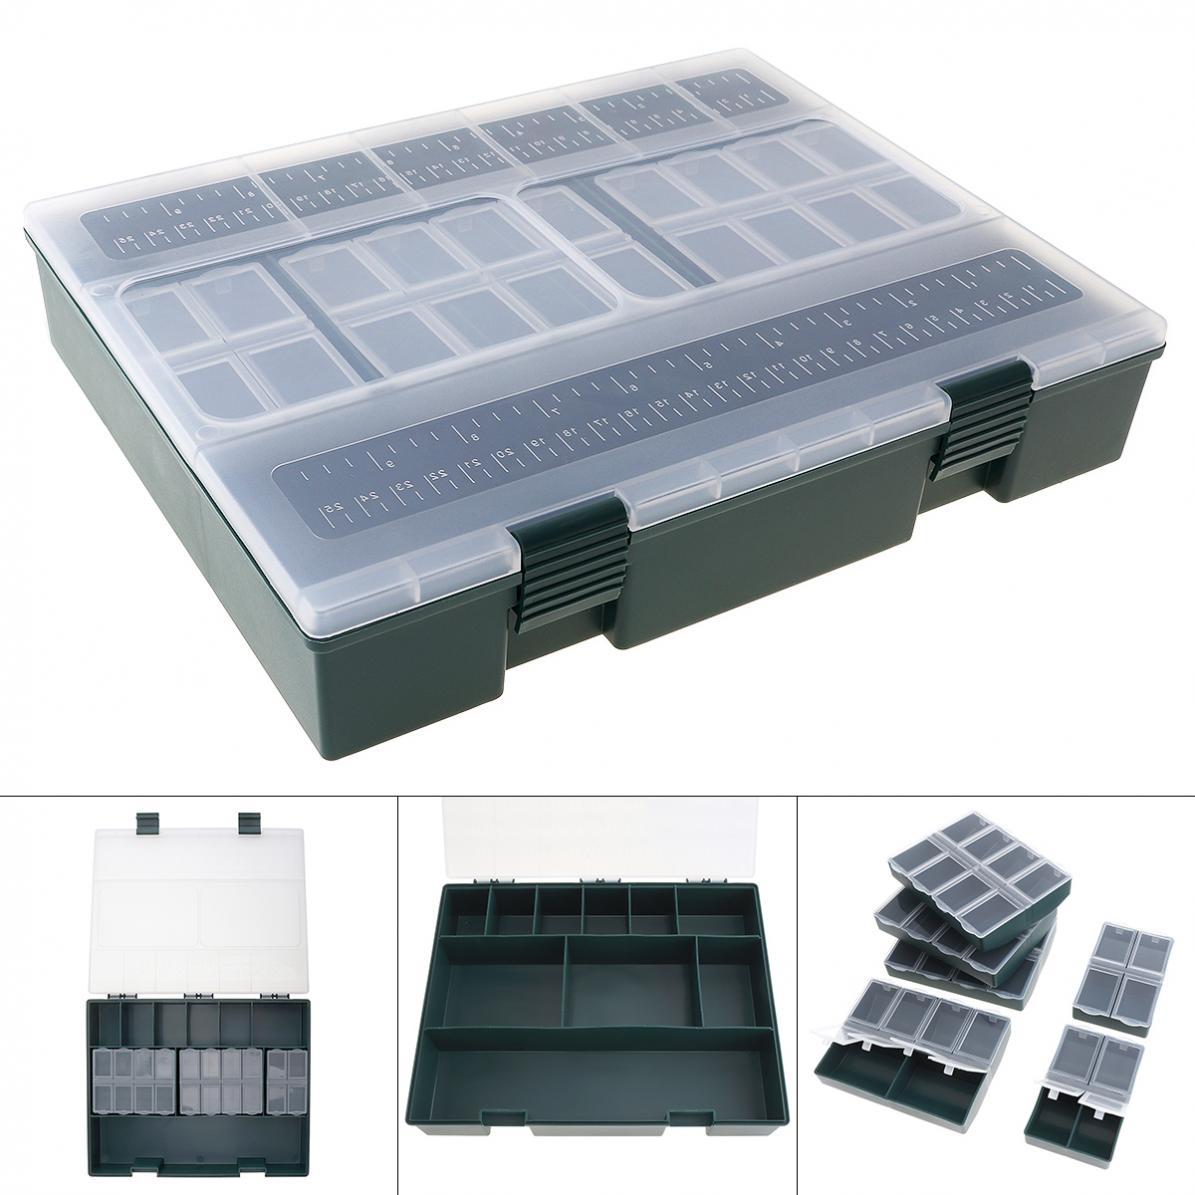 Large Capacity Carp Fishing Tackle Box with Ruler Built- in 6 Separate Small Boxes Ideal for Athletics Leisure Carp Fishing